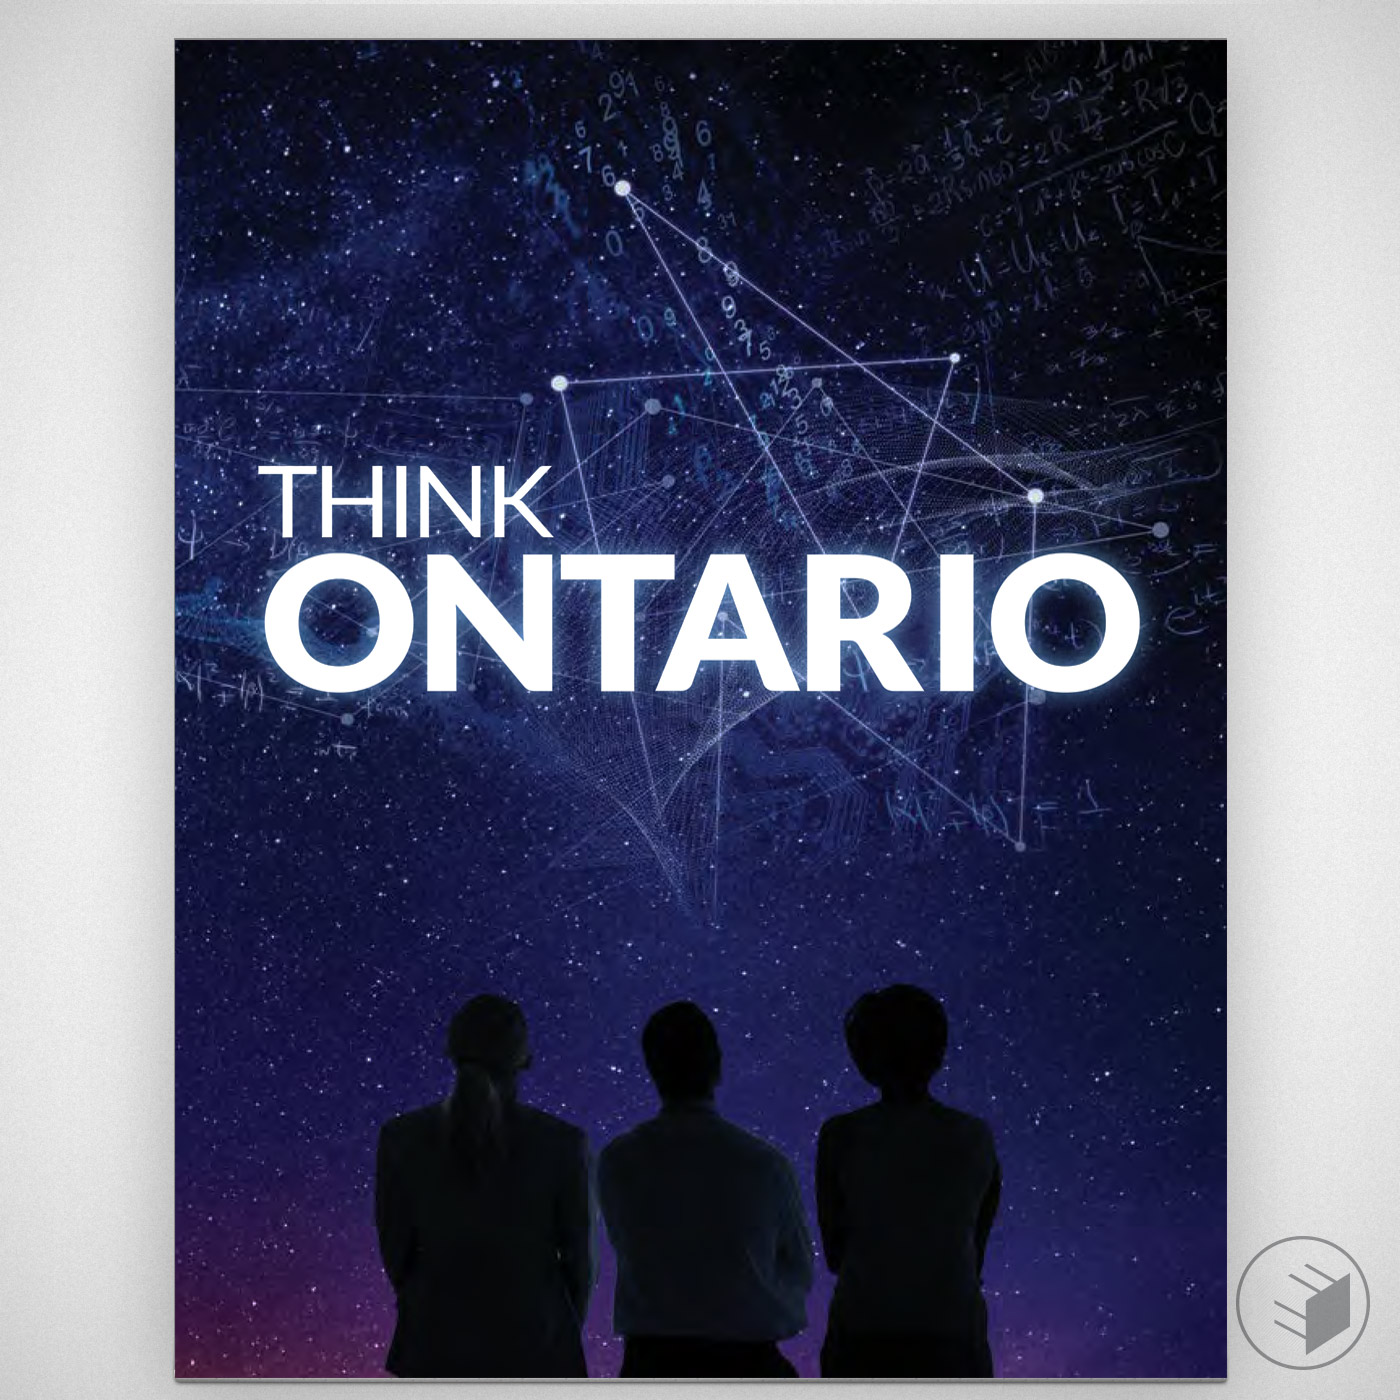 THINK ONTARIO BOOK FOR PROVINCIAL GOVERNMENT, (FREELANCE ART DIRECTION WITH BT/A ADVERTISING)